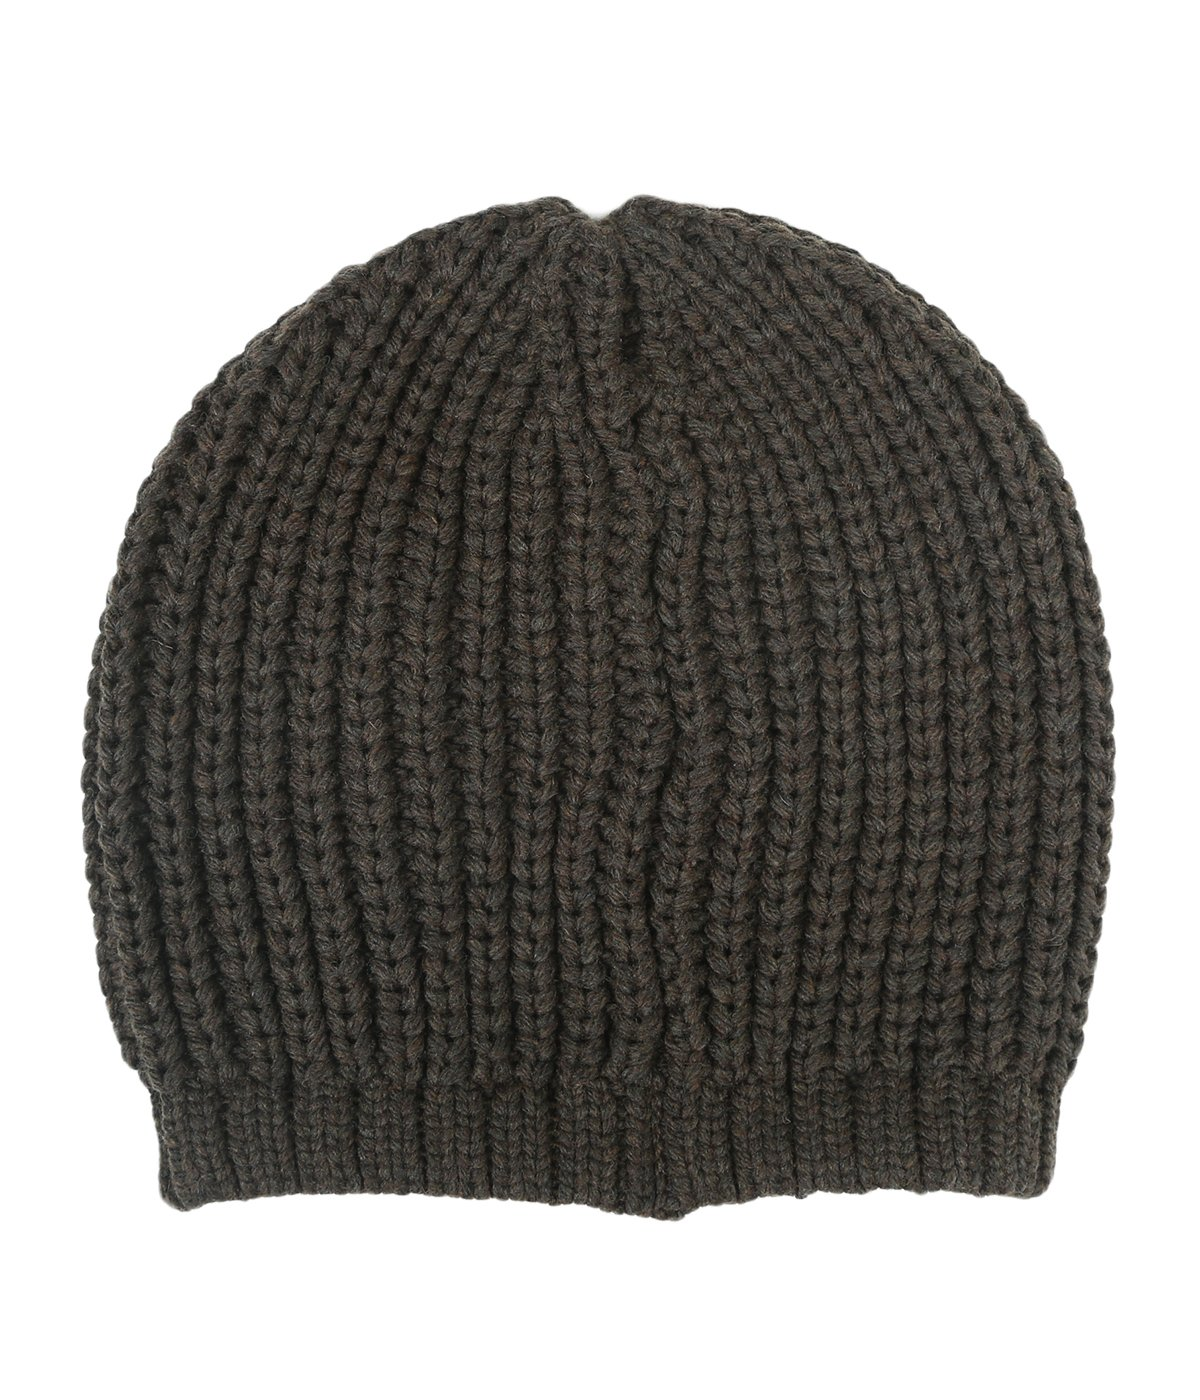 Knit tam - 2/12 cotton/wool air yarn -